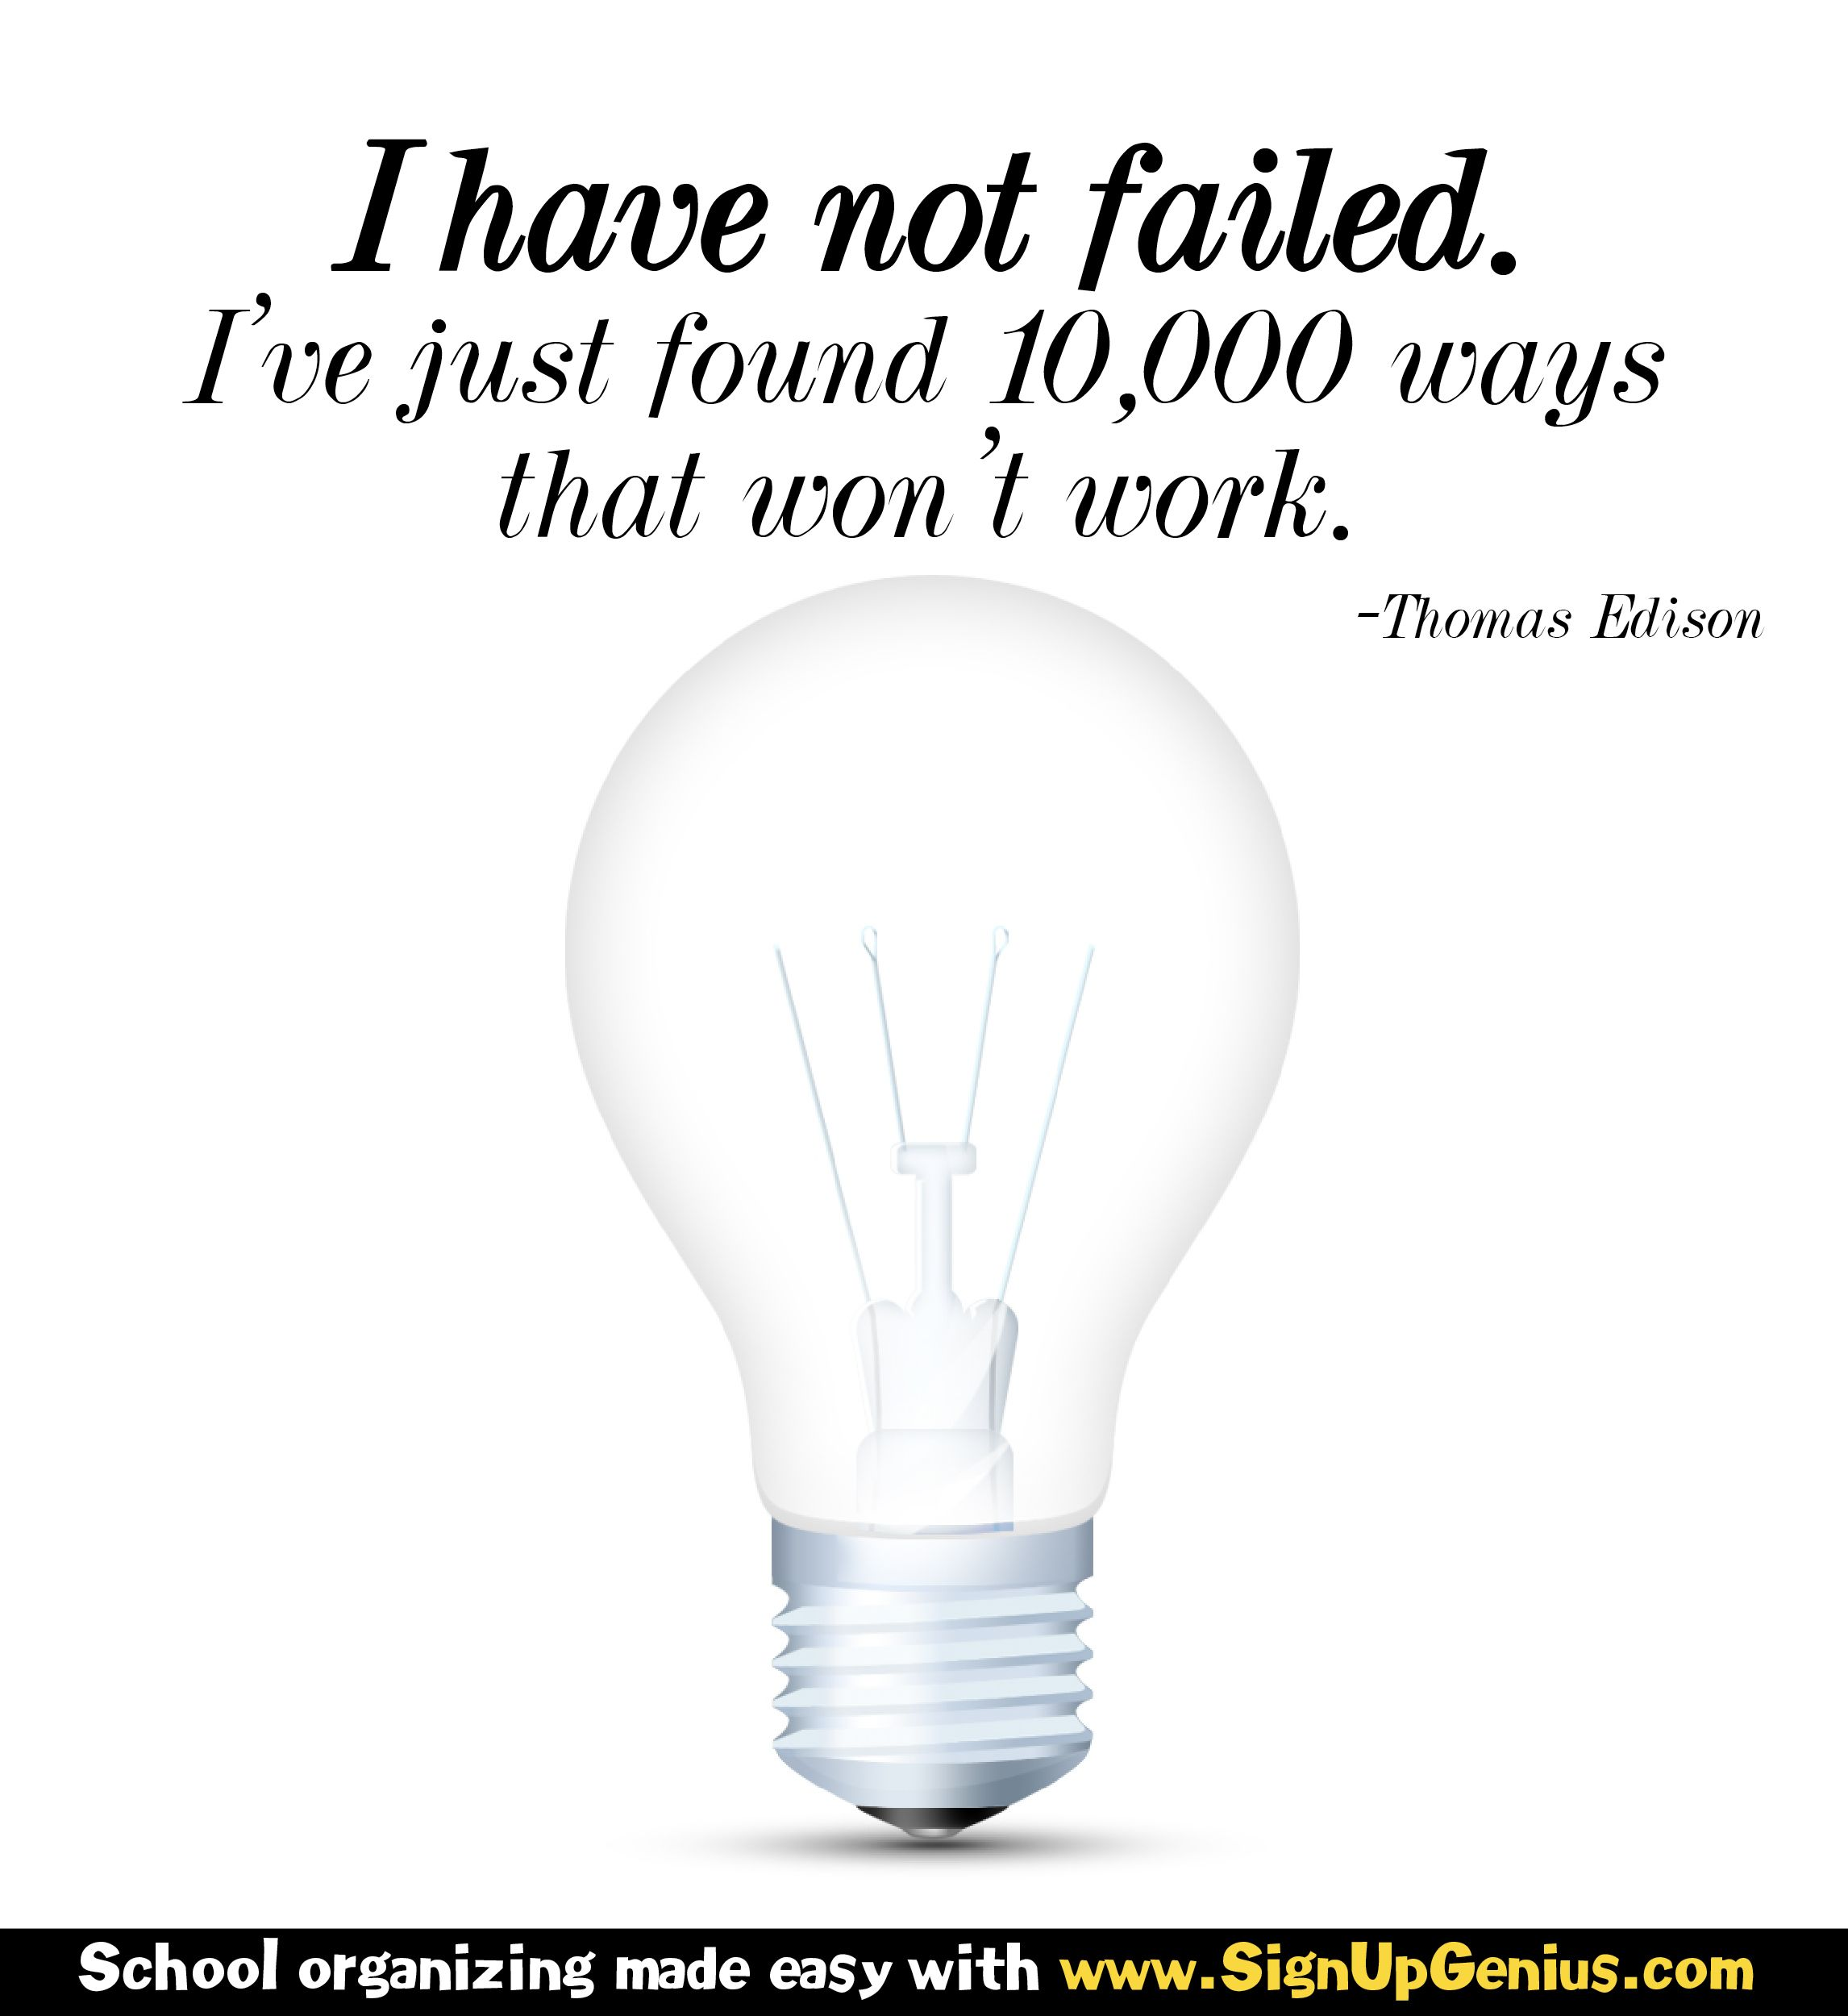 Success comes from a process of trial and error. A great